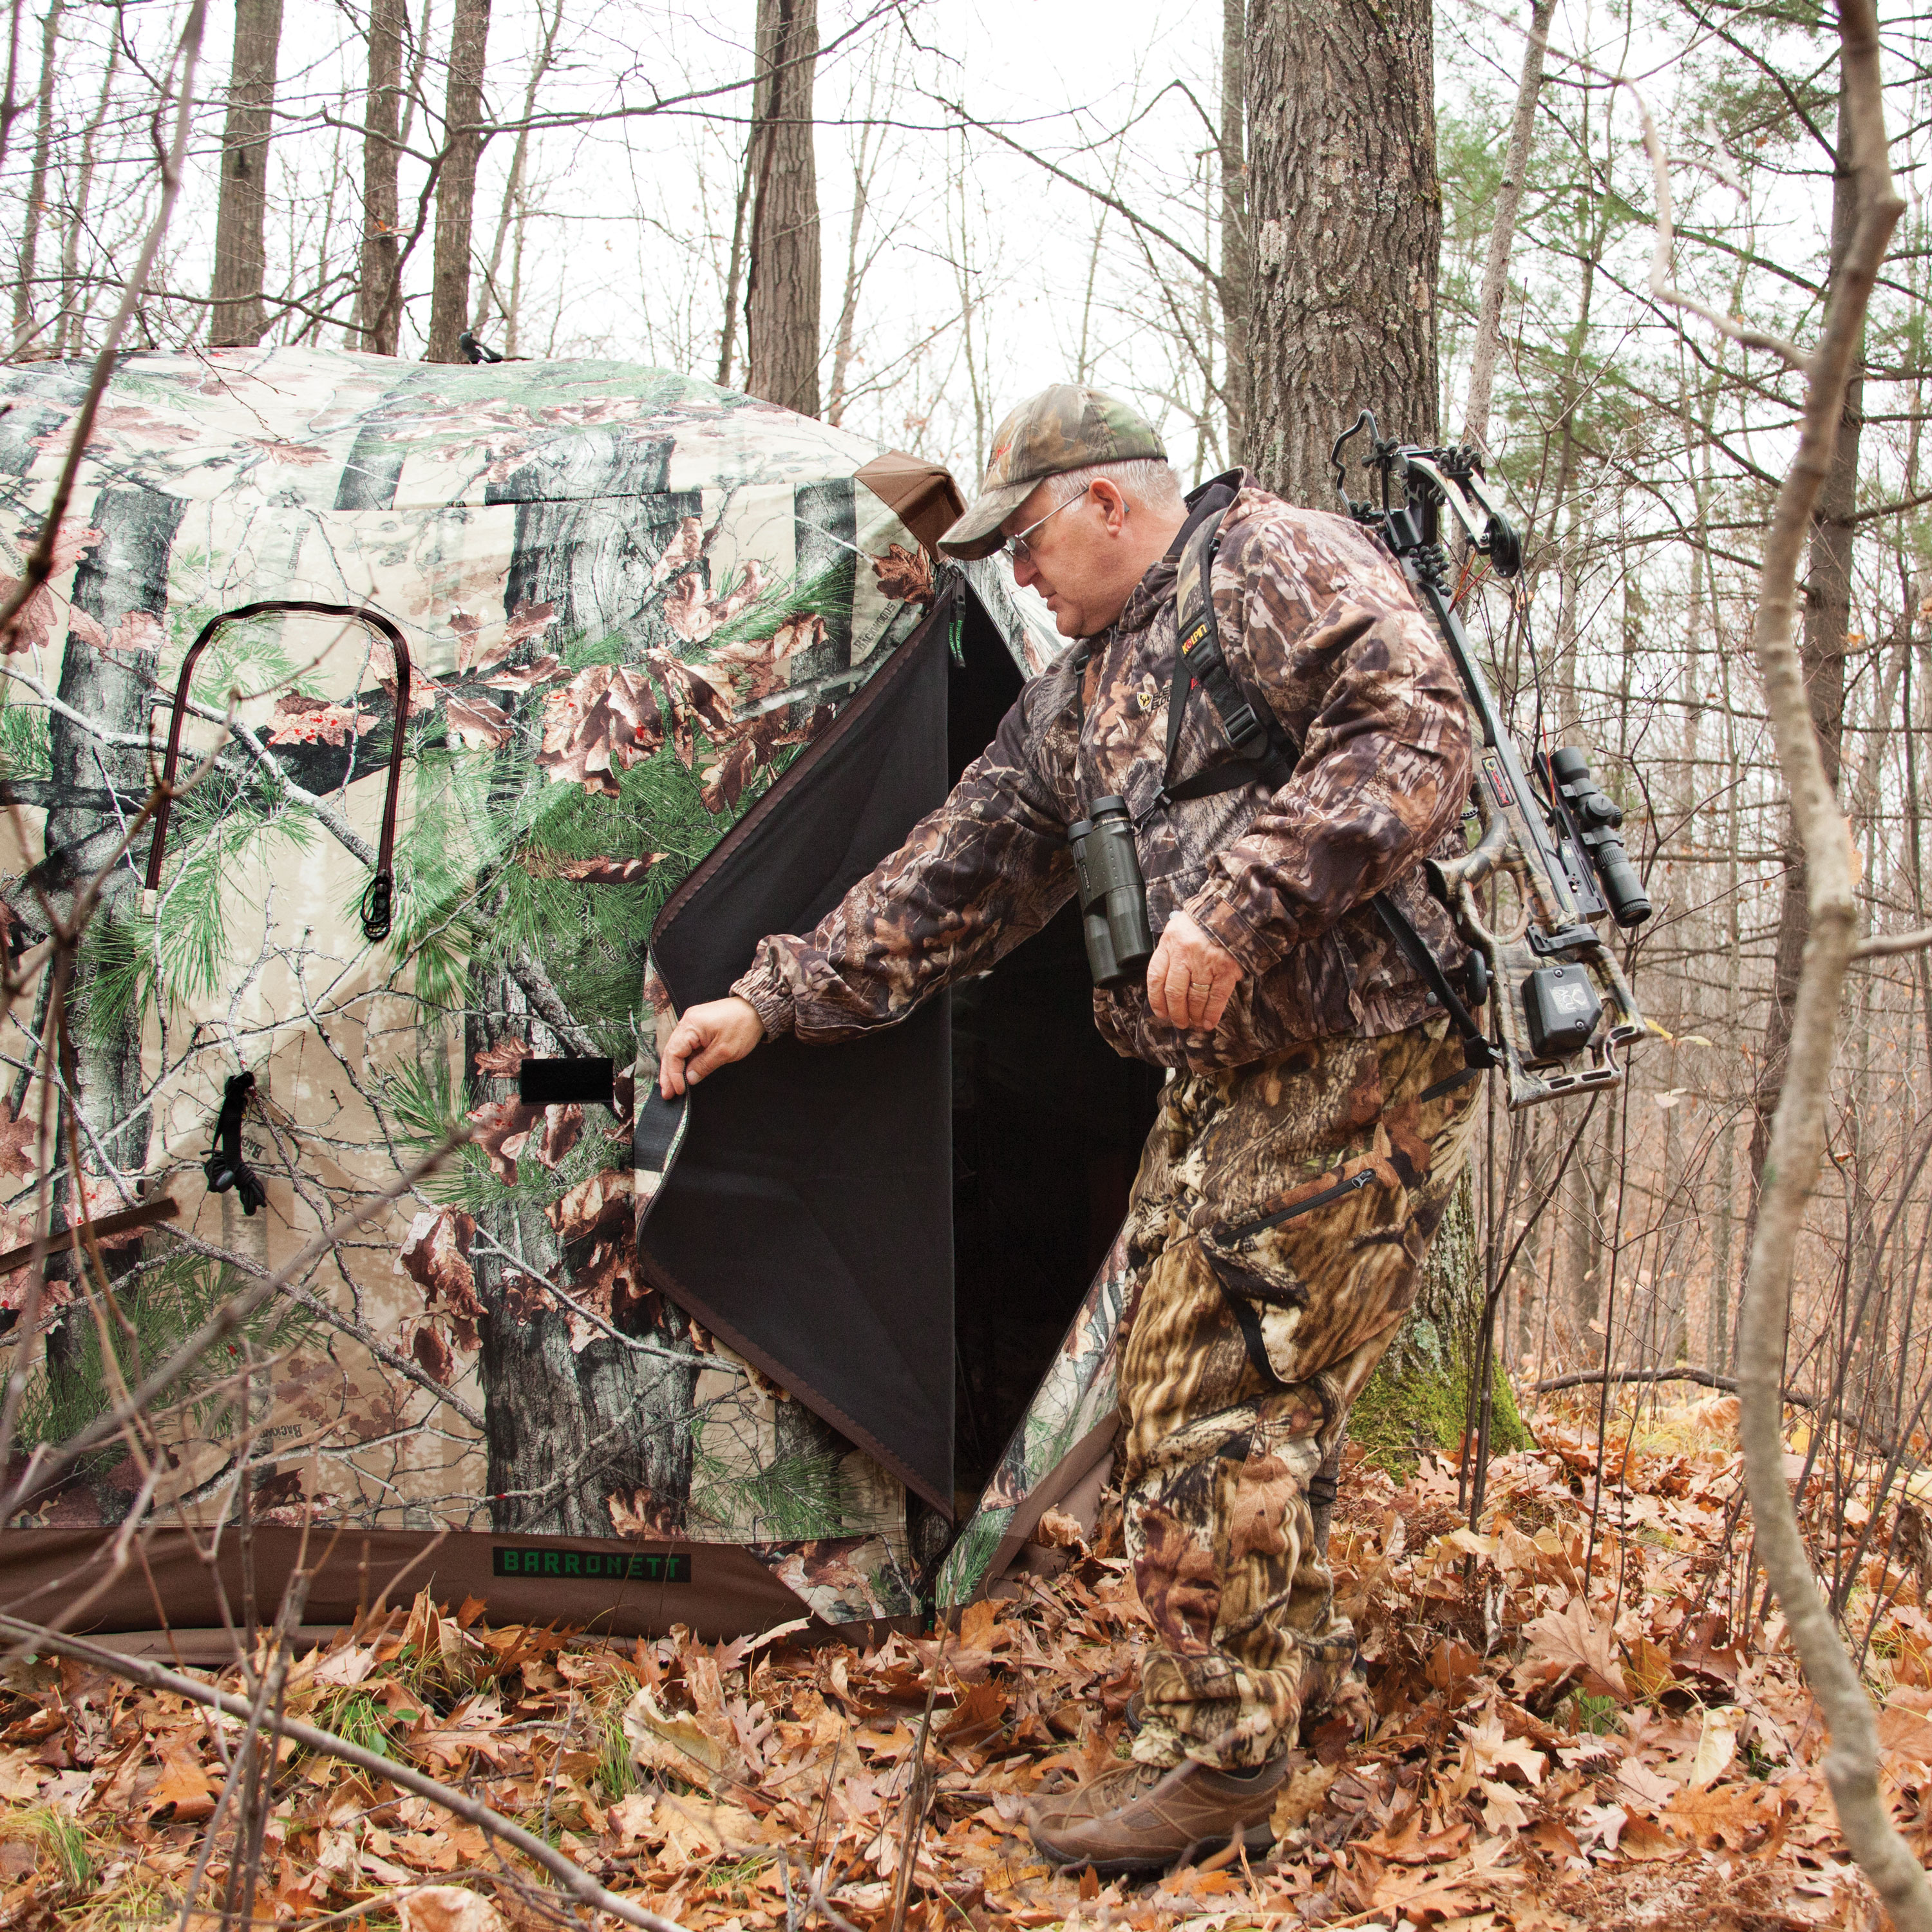 ground under outdoors turkey the blinds blind muddy for tips hunting up feature roosted best choosing setting person turkeys